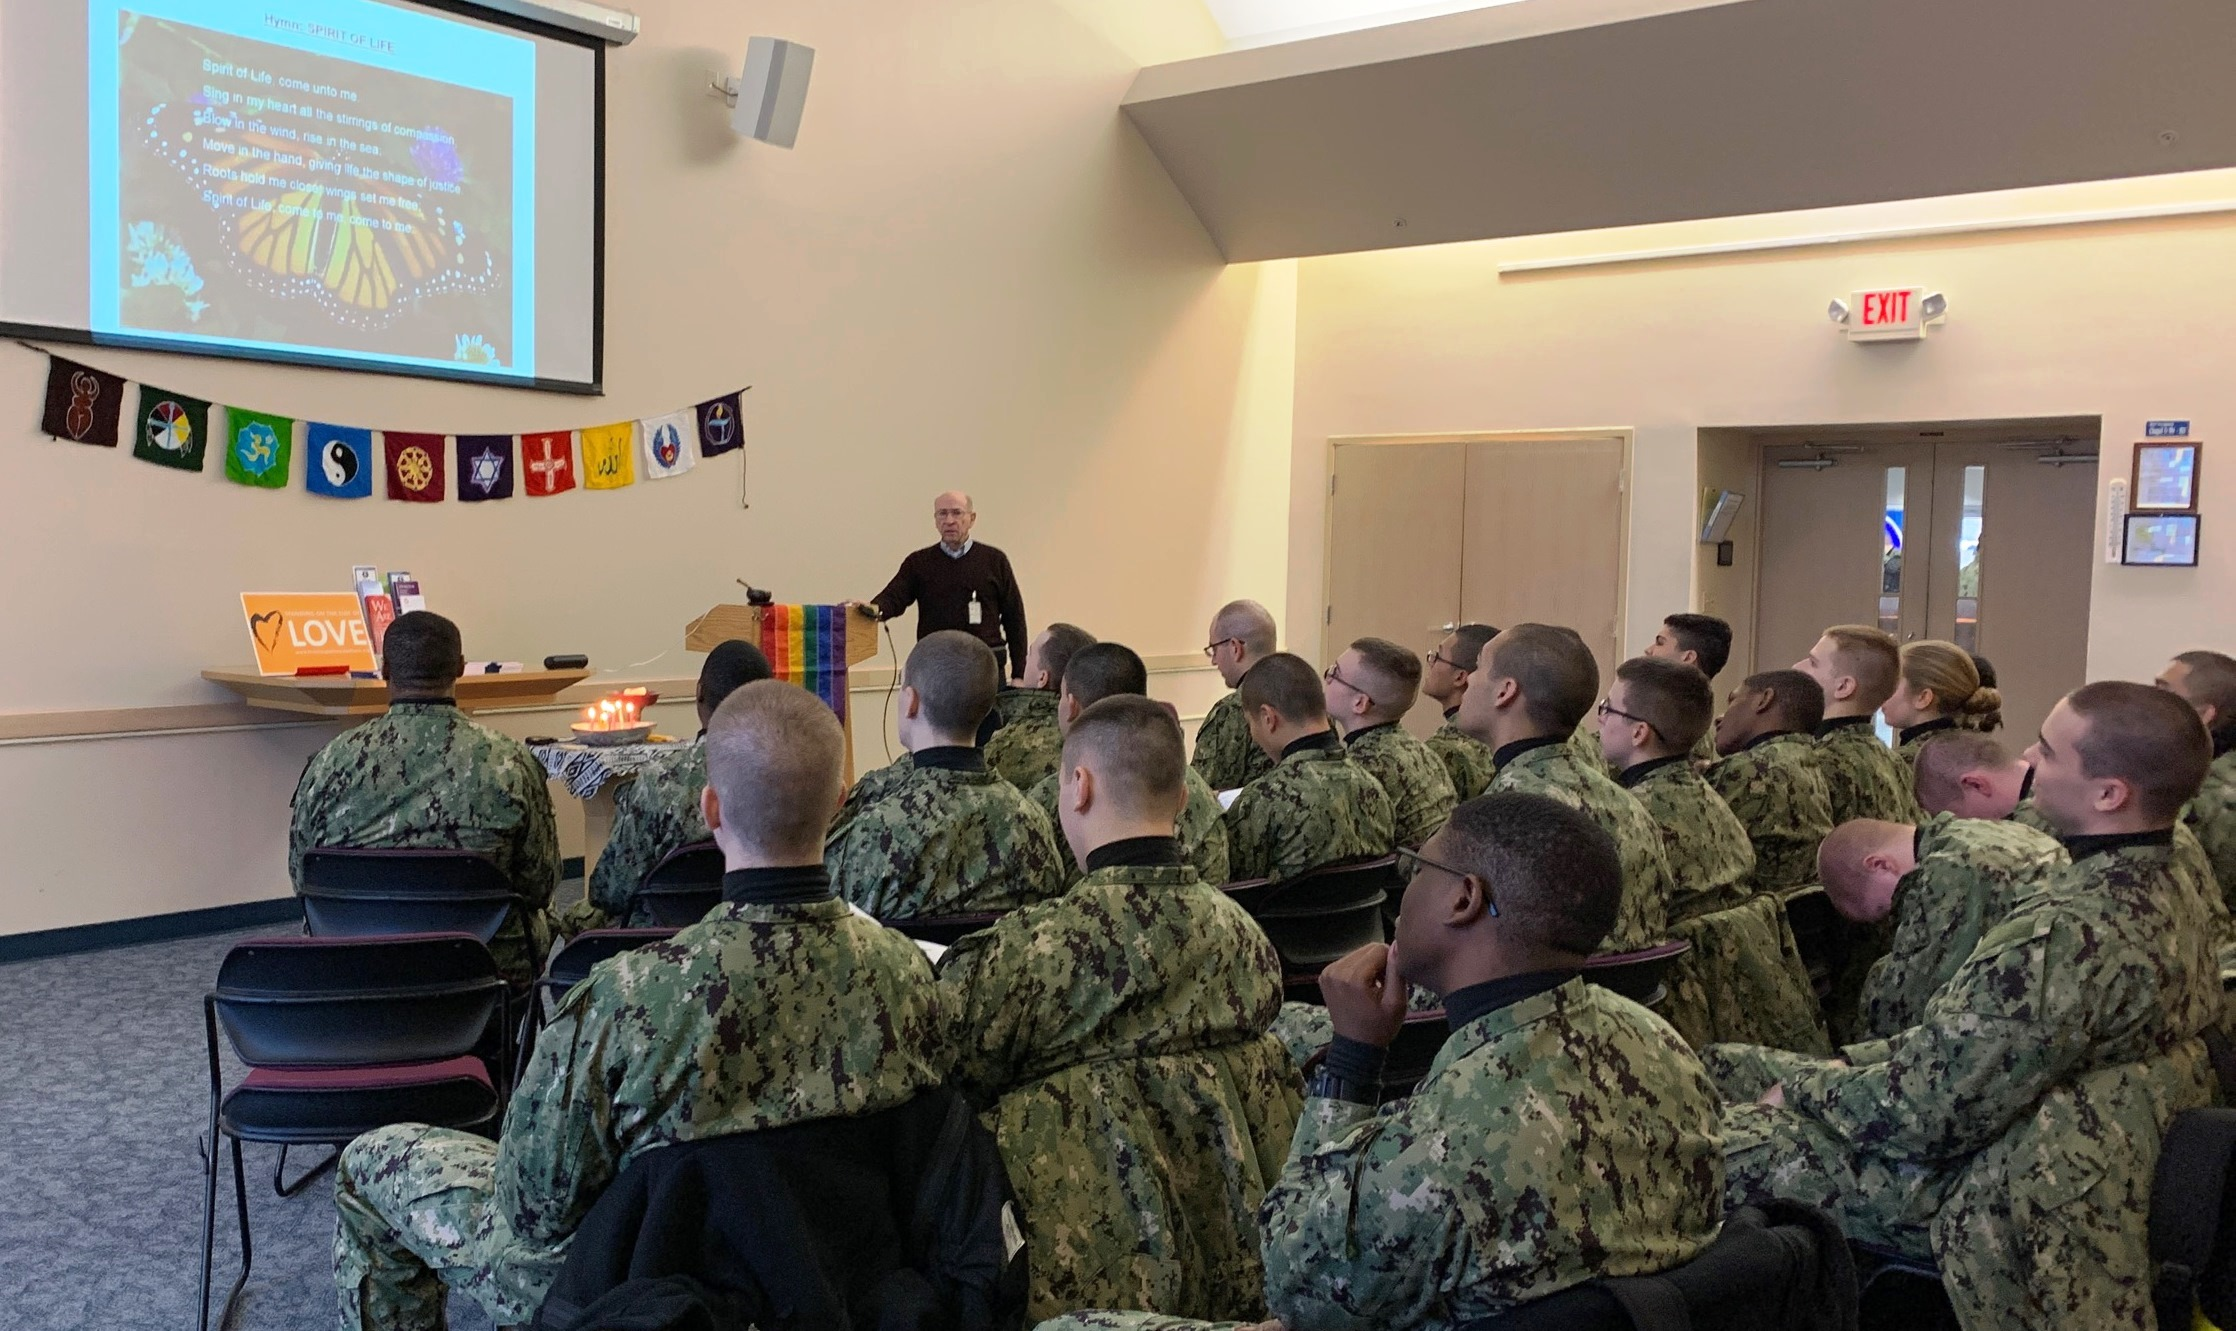 UU service at Navy Boot Camp - Feb 9 2020